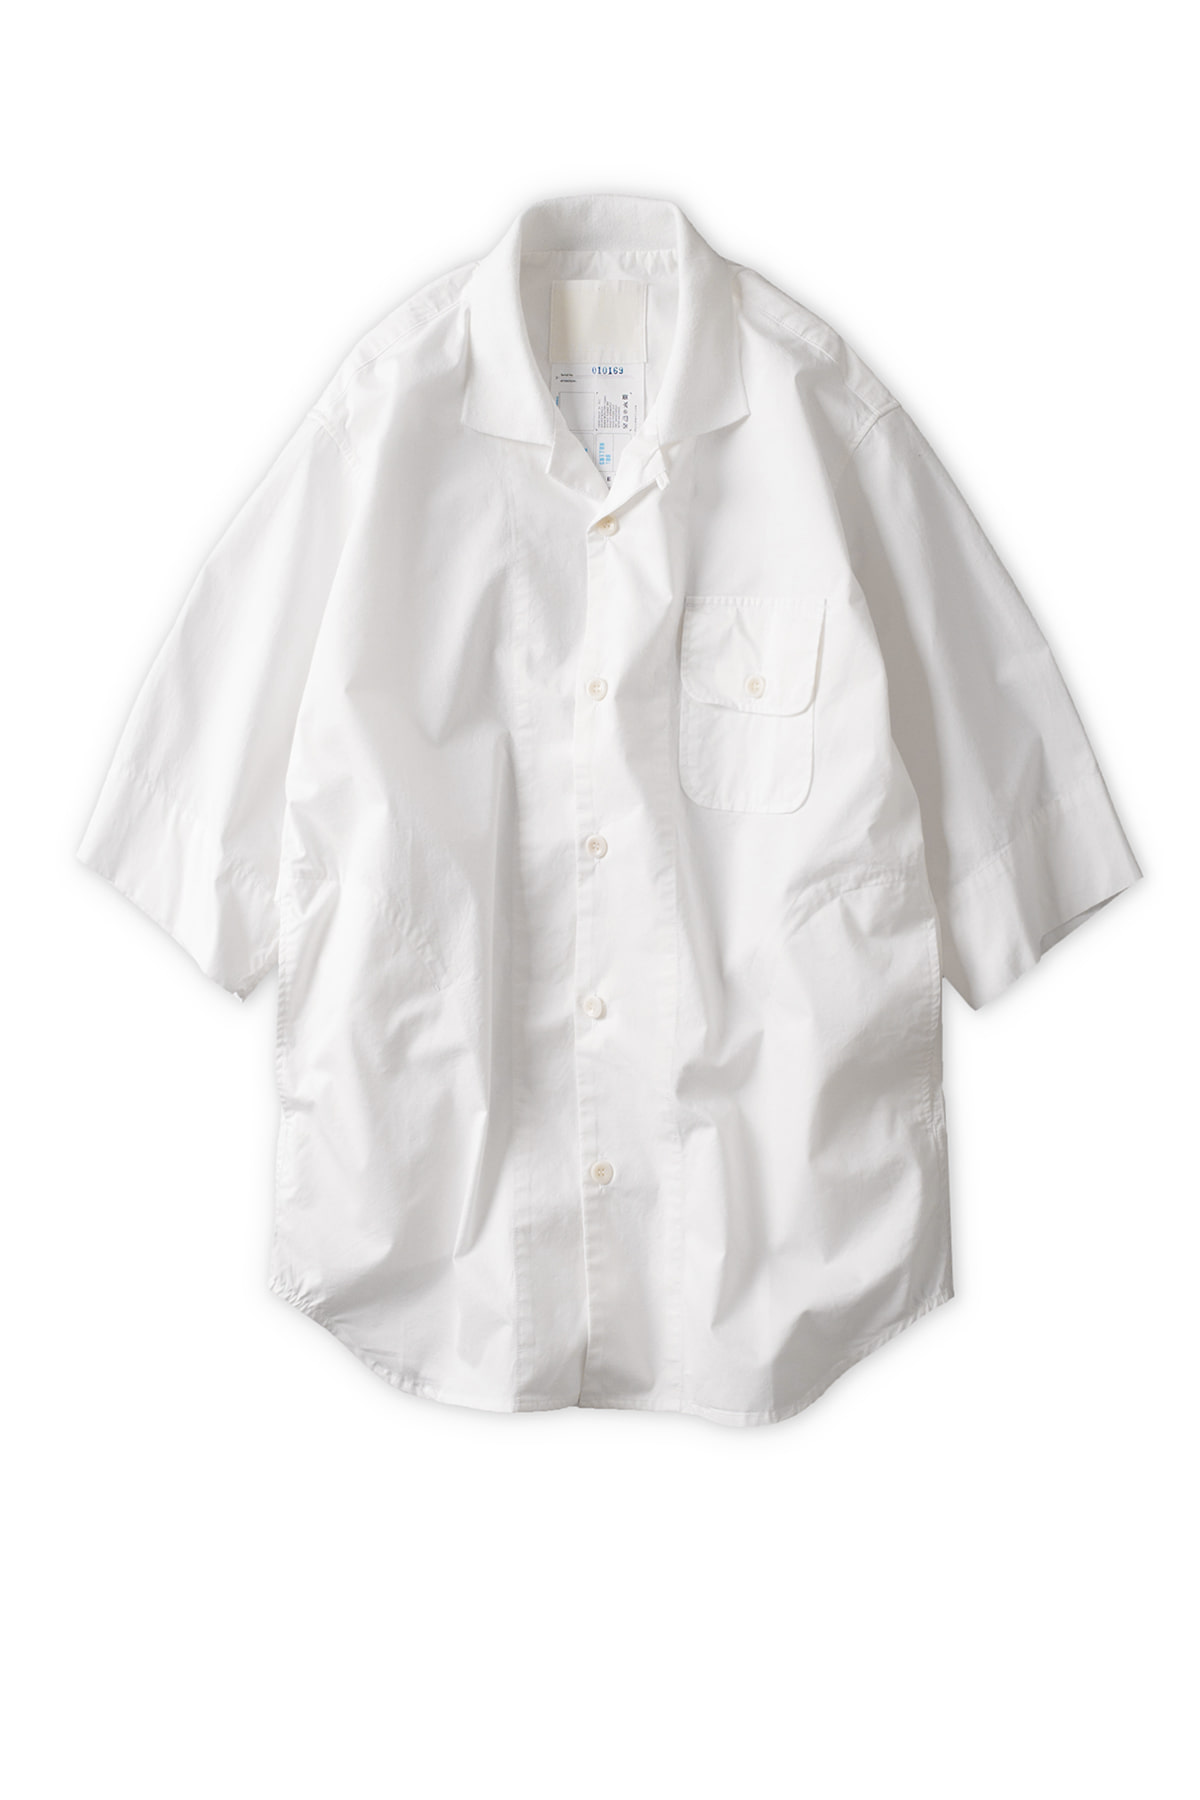 Document : M123 Cafri Shirt (White)